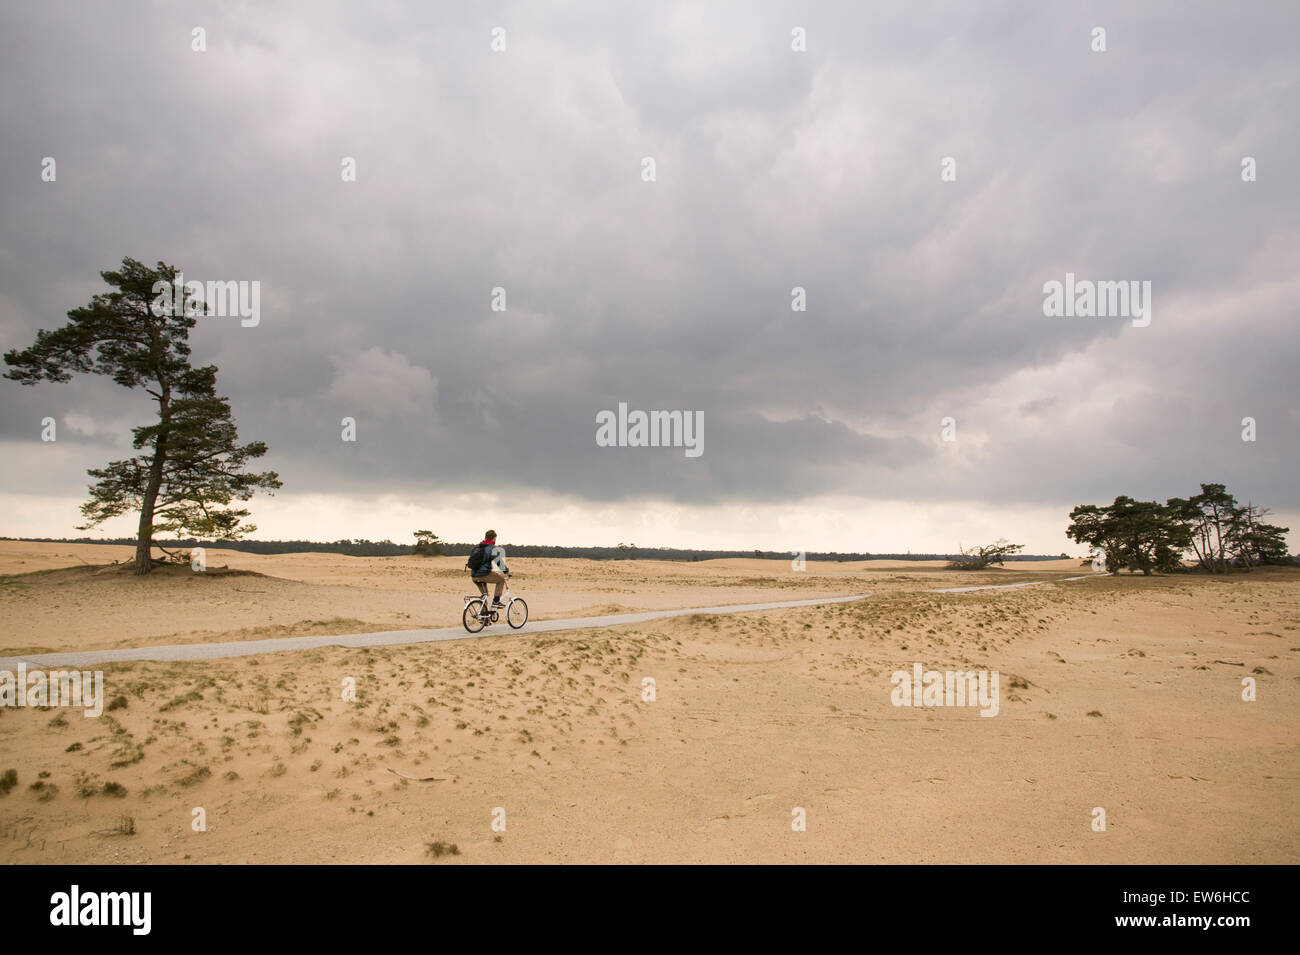 A man cycling in the Netherlands National Park, the Hoge de Veluwe. - Stock Image